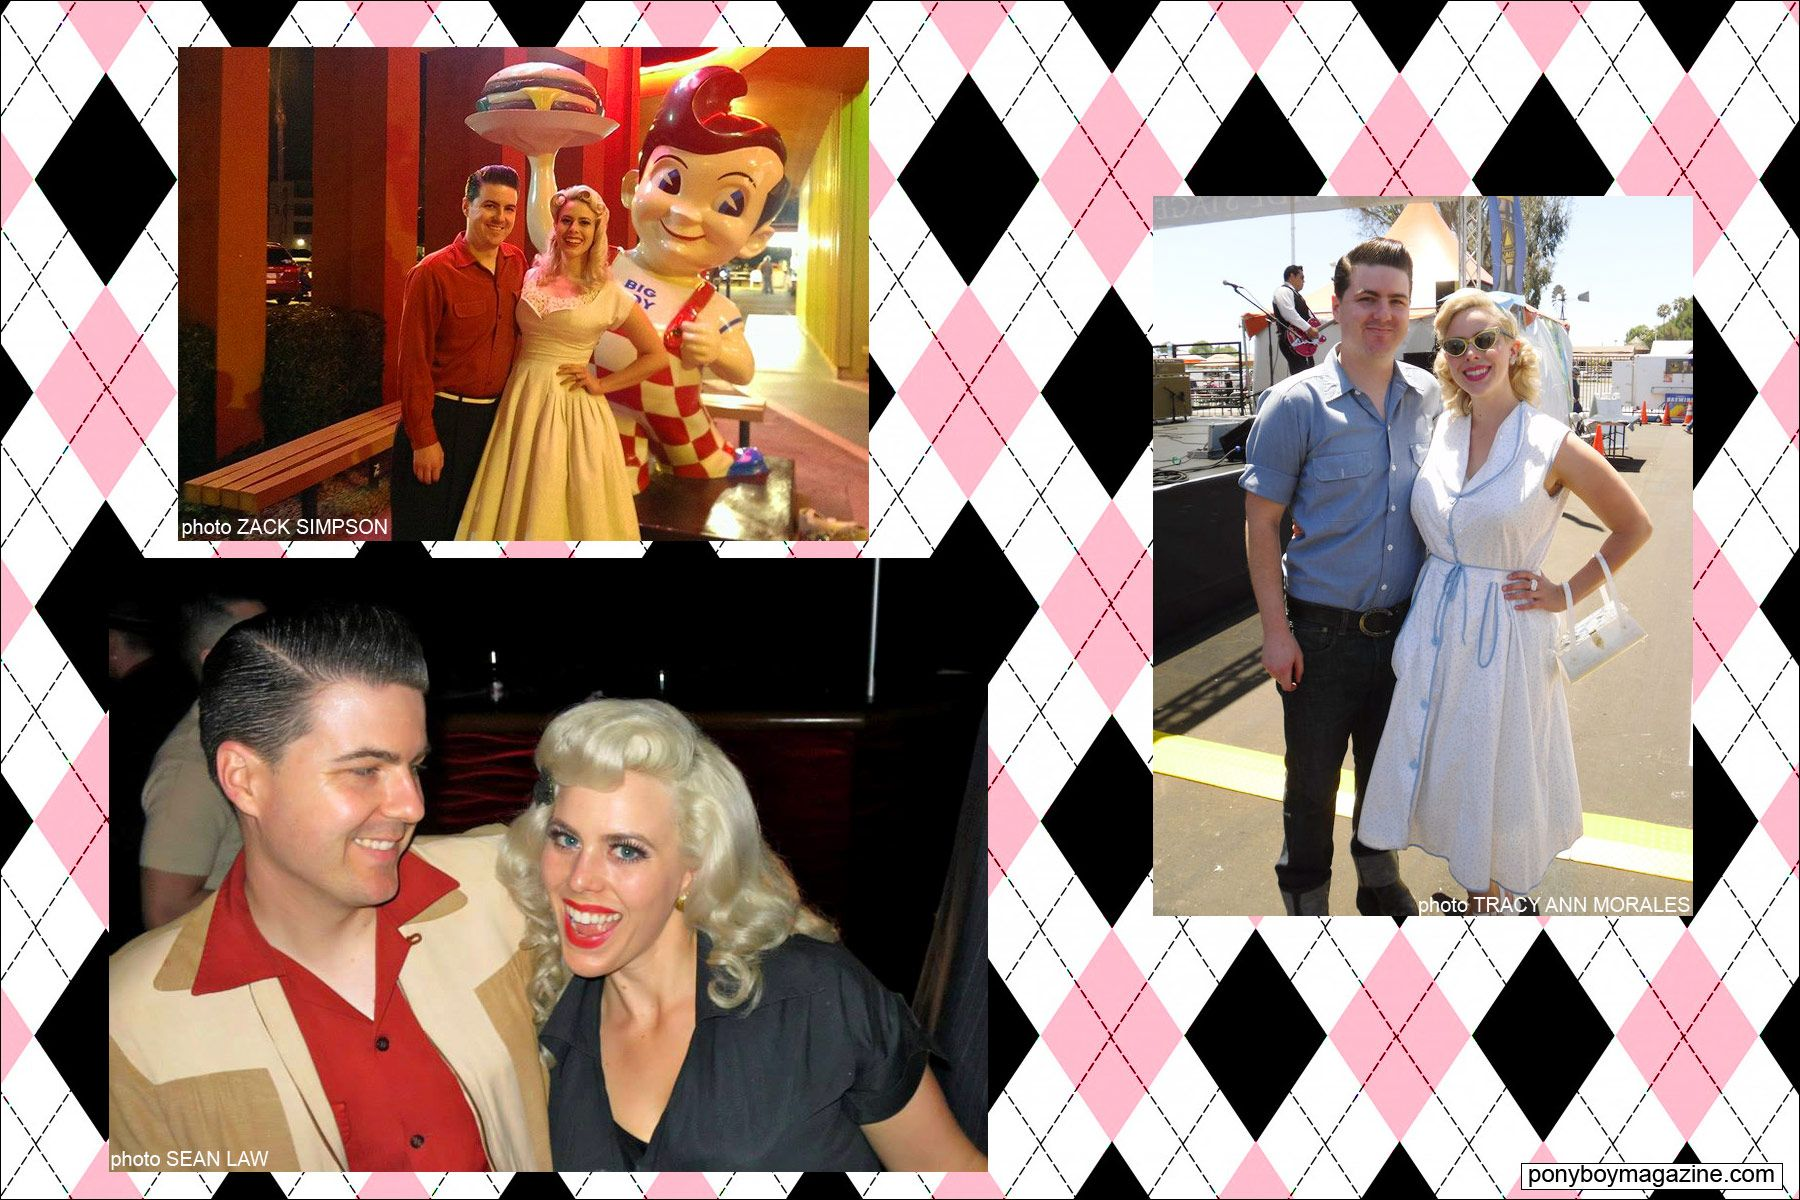 Miss Dollie Deville, The Rockabilly Socialite, with her husband Zack Simpson. Ponyboy Magazine.